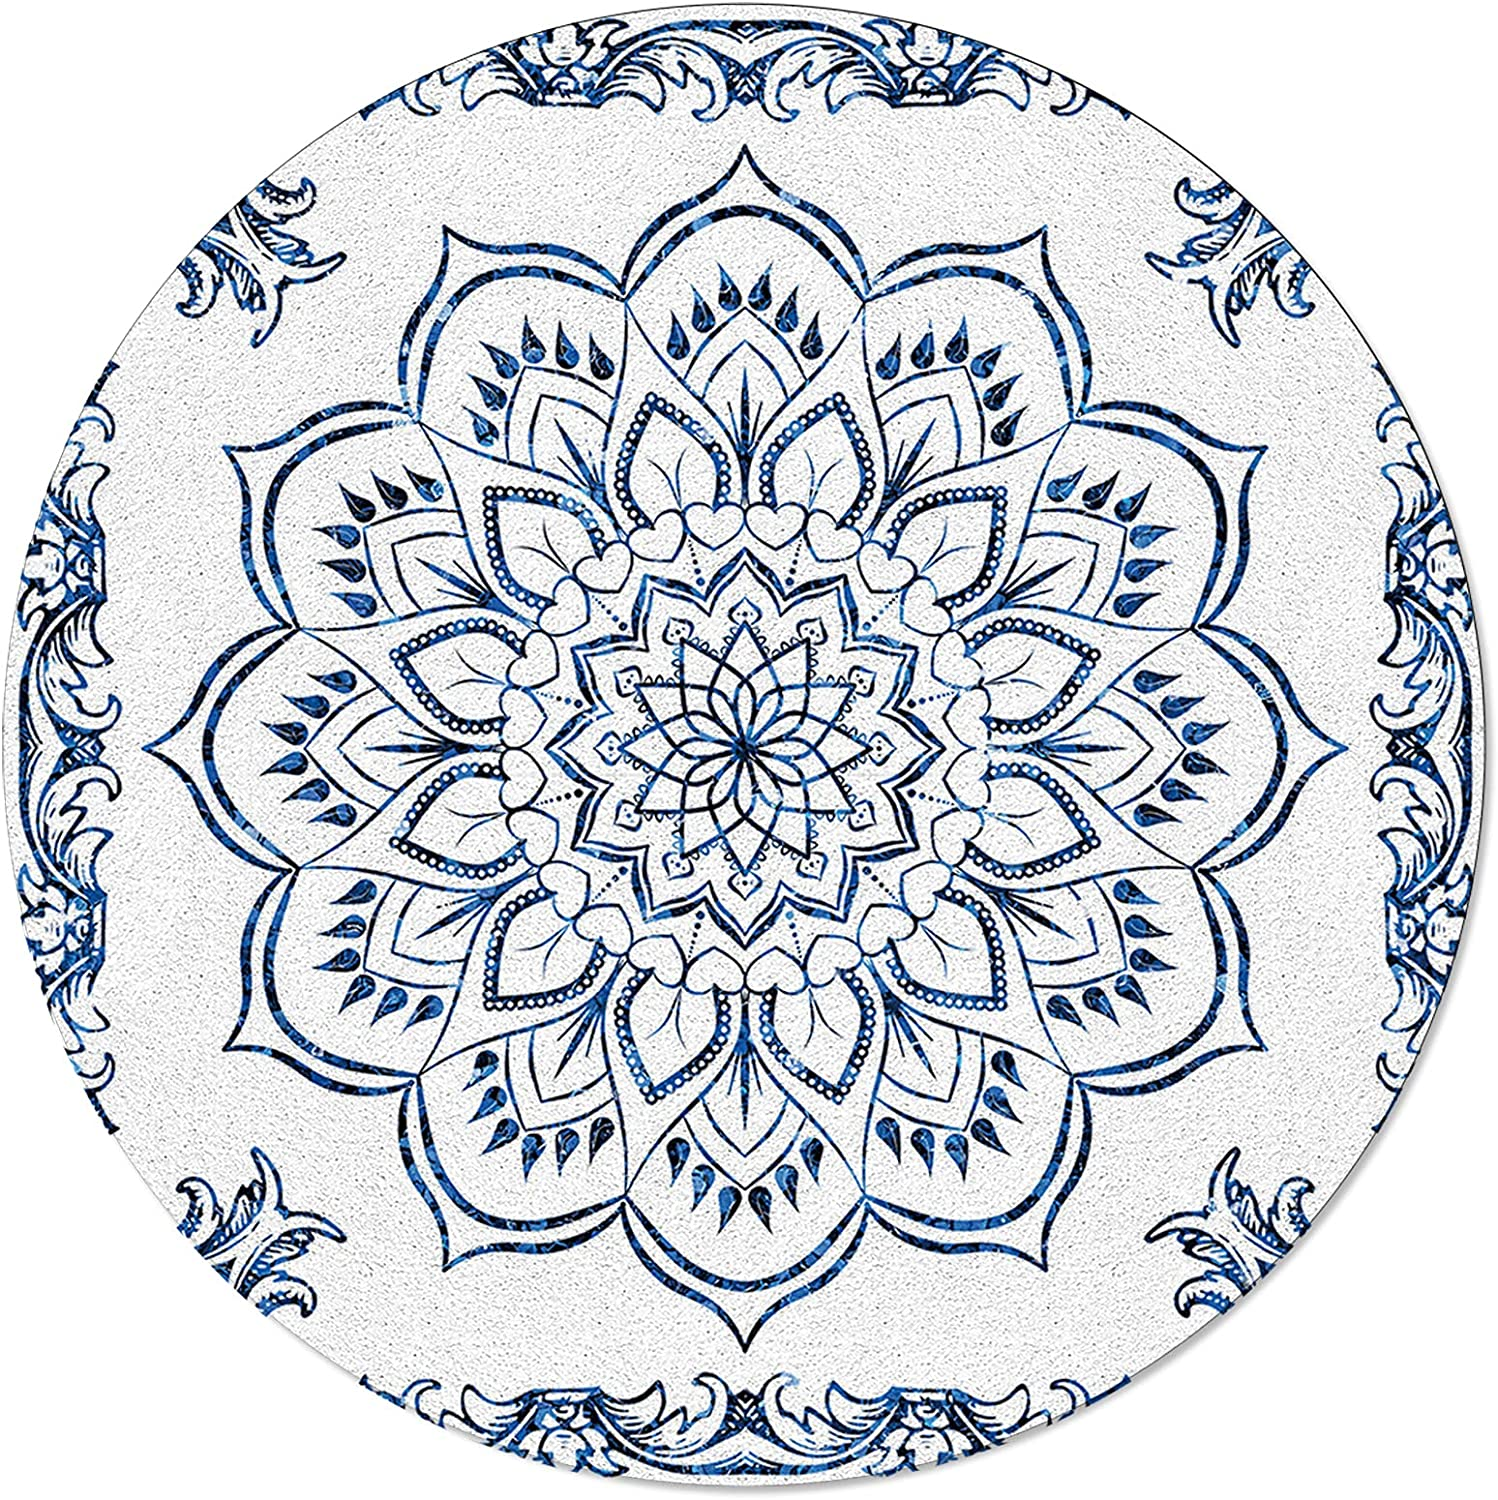 MAIANNE Non-Slip Round Area Rugs Recommendation Soft Backing Floral Rubber Dealing full price reduction with